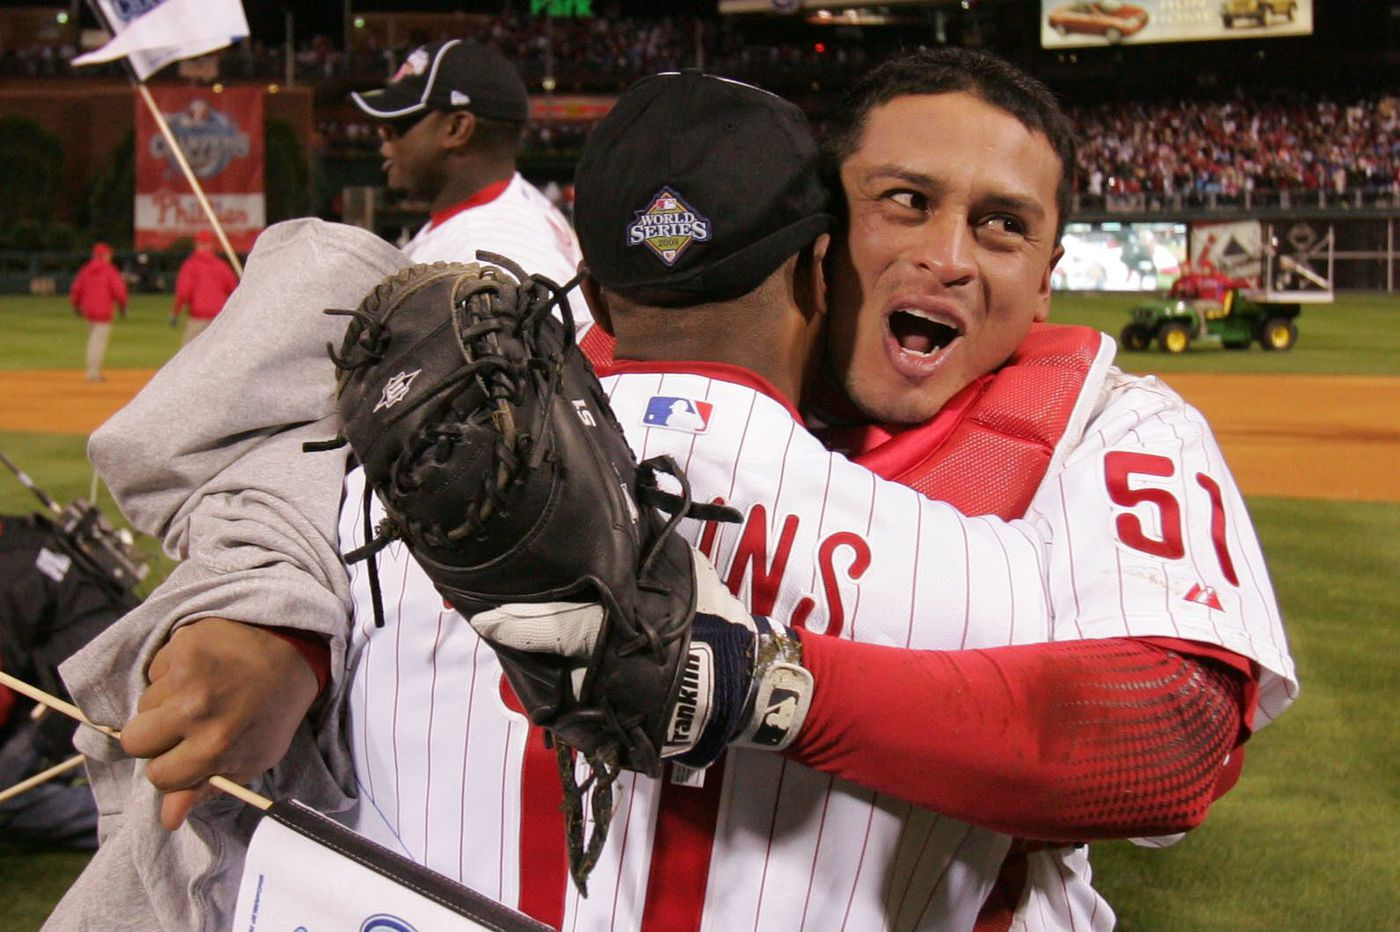 2008 World Series Game 5, and all the rain that delayed the Phillies' reign | Oral History